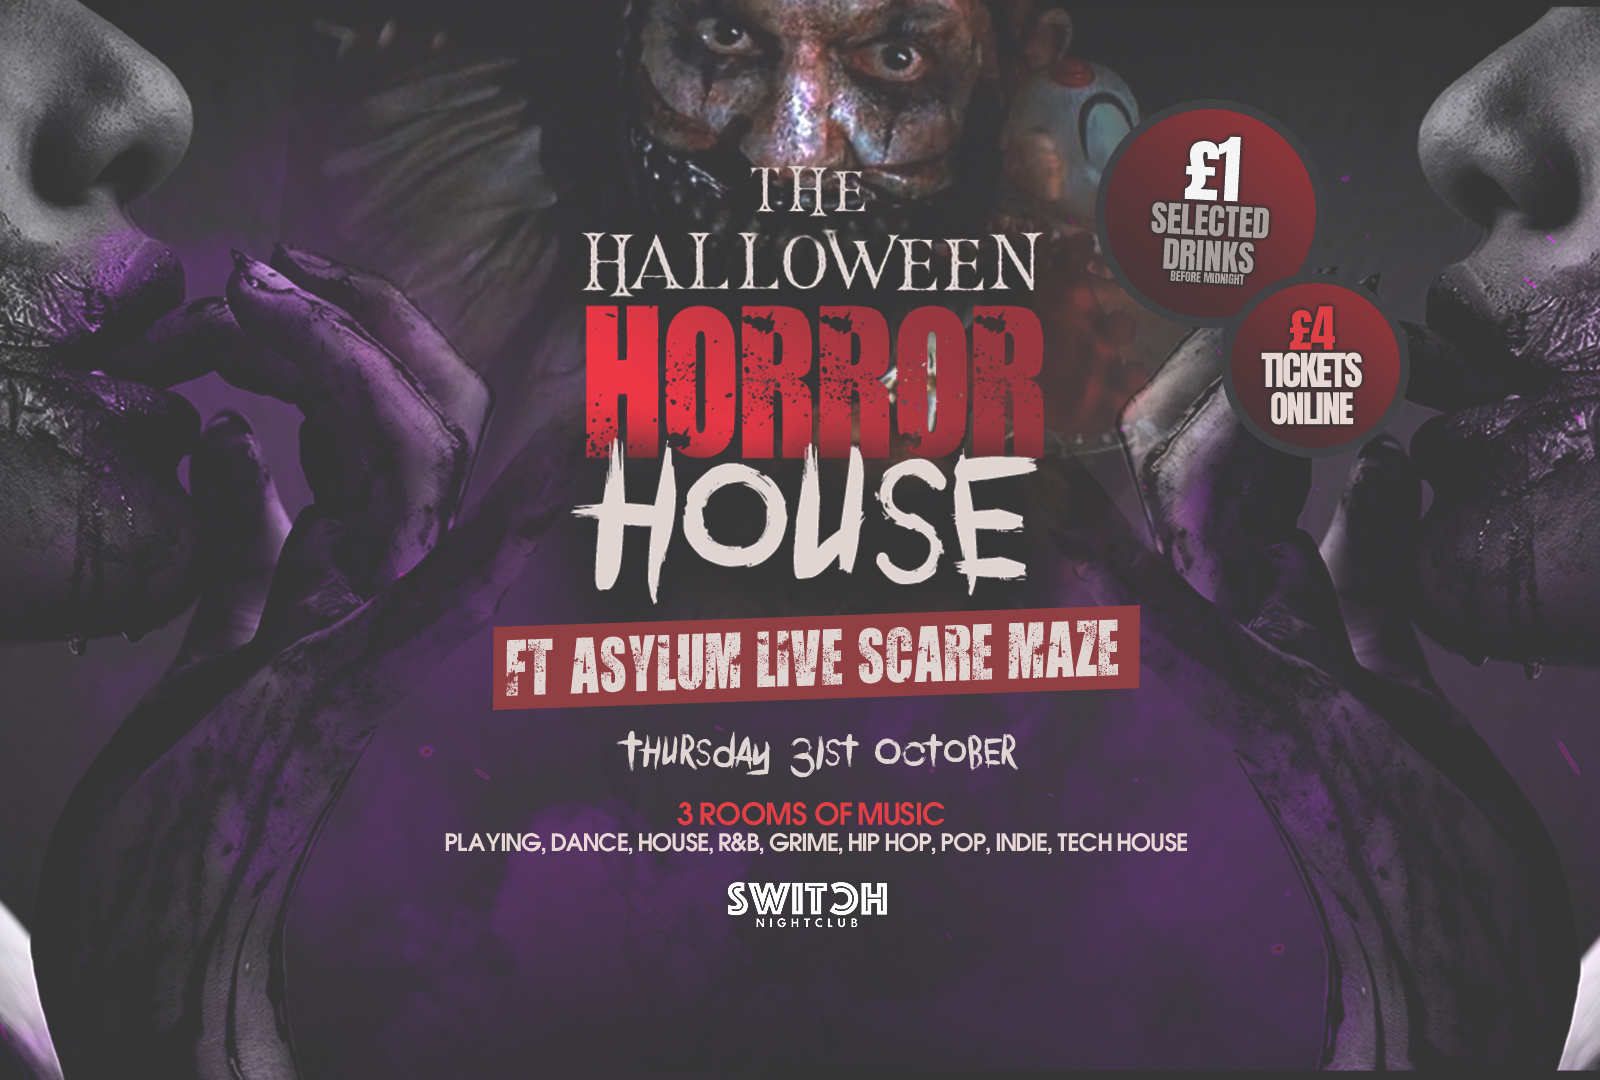 Switch Presents The Halloween Horror House